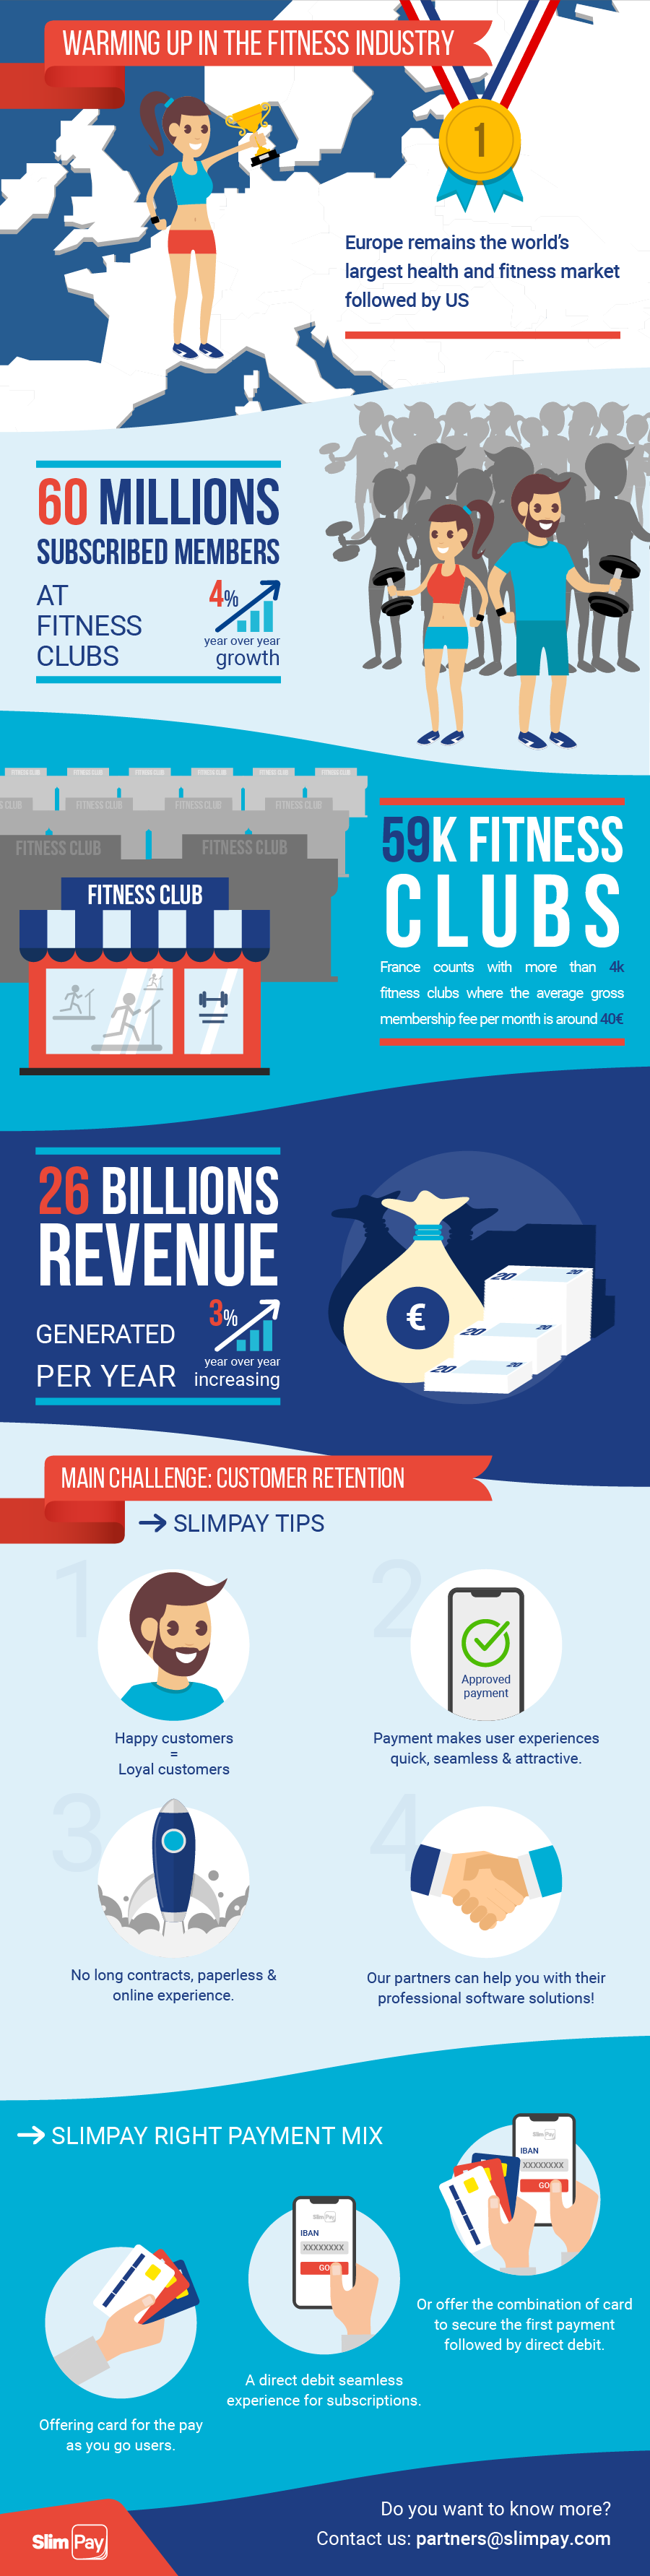 Infographic: Fitness Industry Challenge